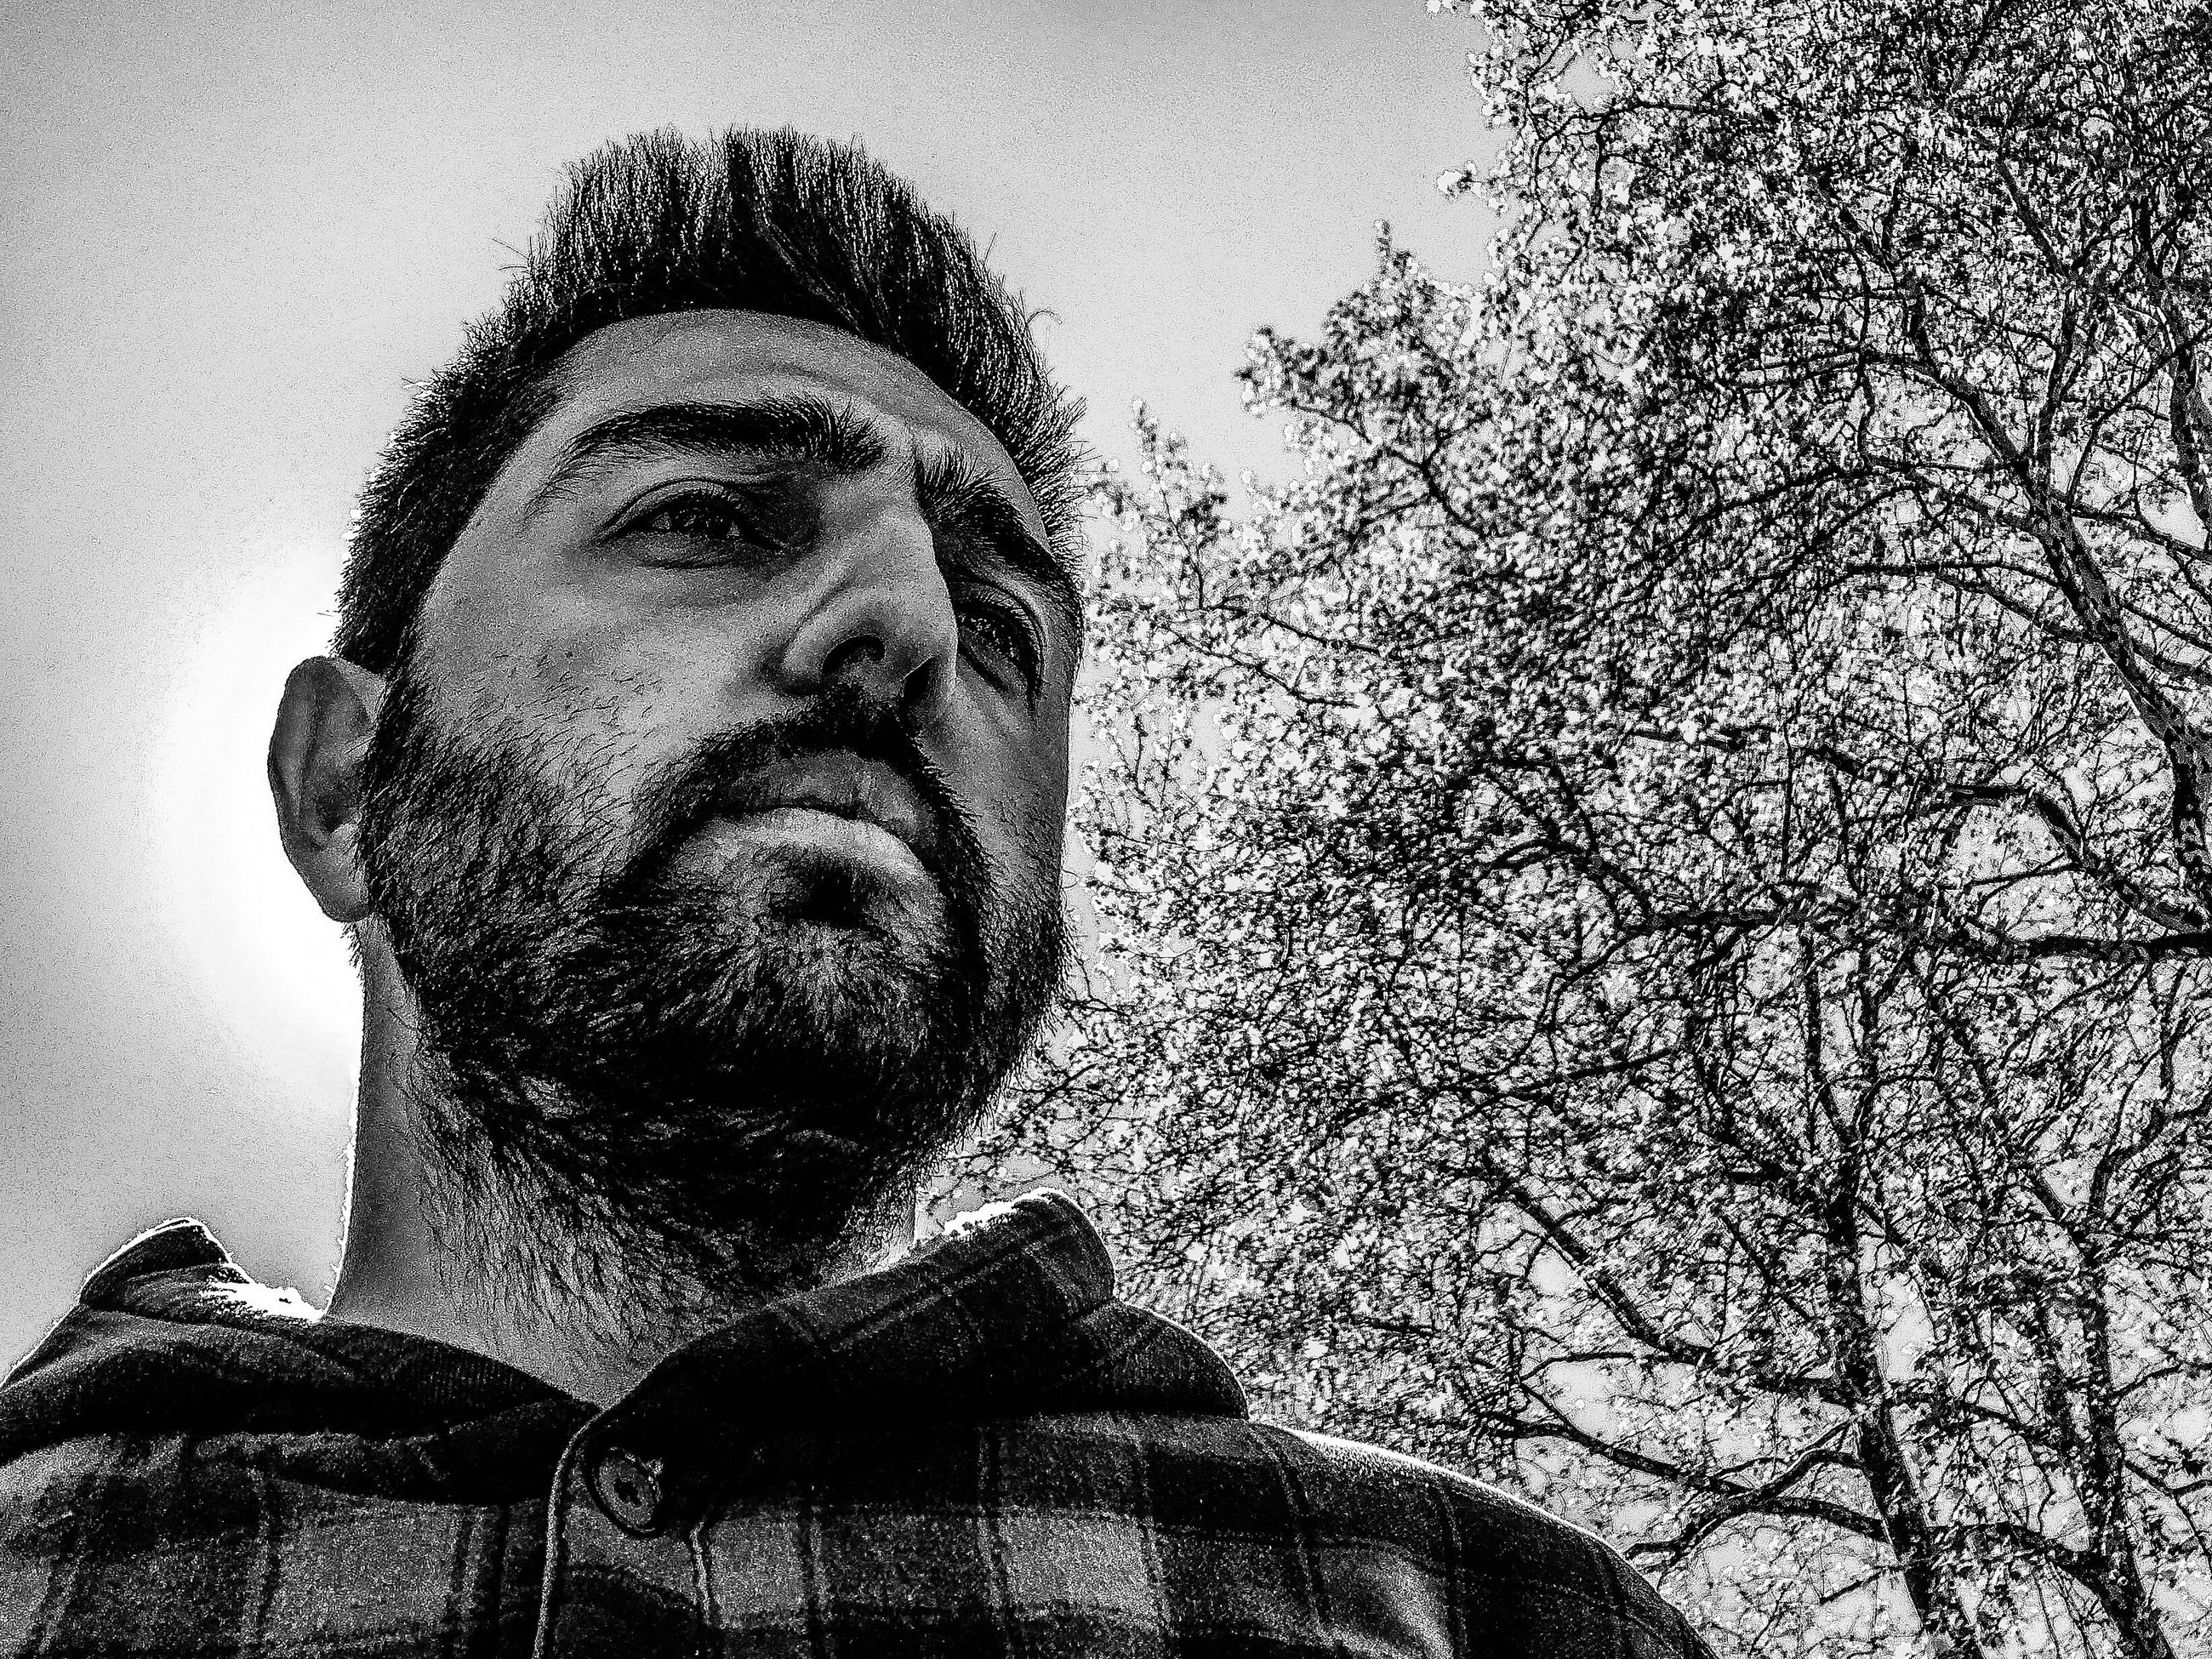 beard, low angle view, real people, one person, portrait, headshot, looking at camera, human face, outdoors, men, tree, clear sky, day, sky, one man only, young adult, close-up, adult, people